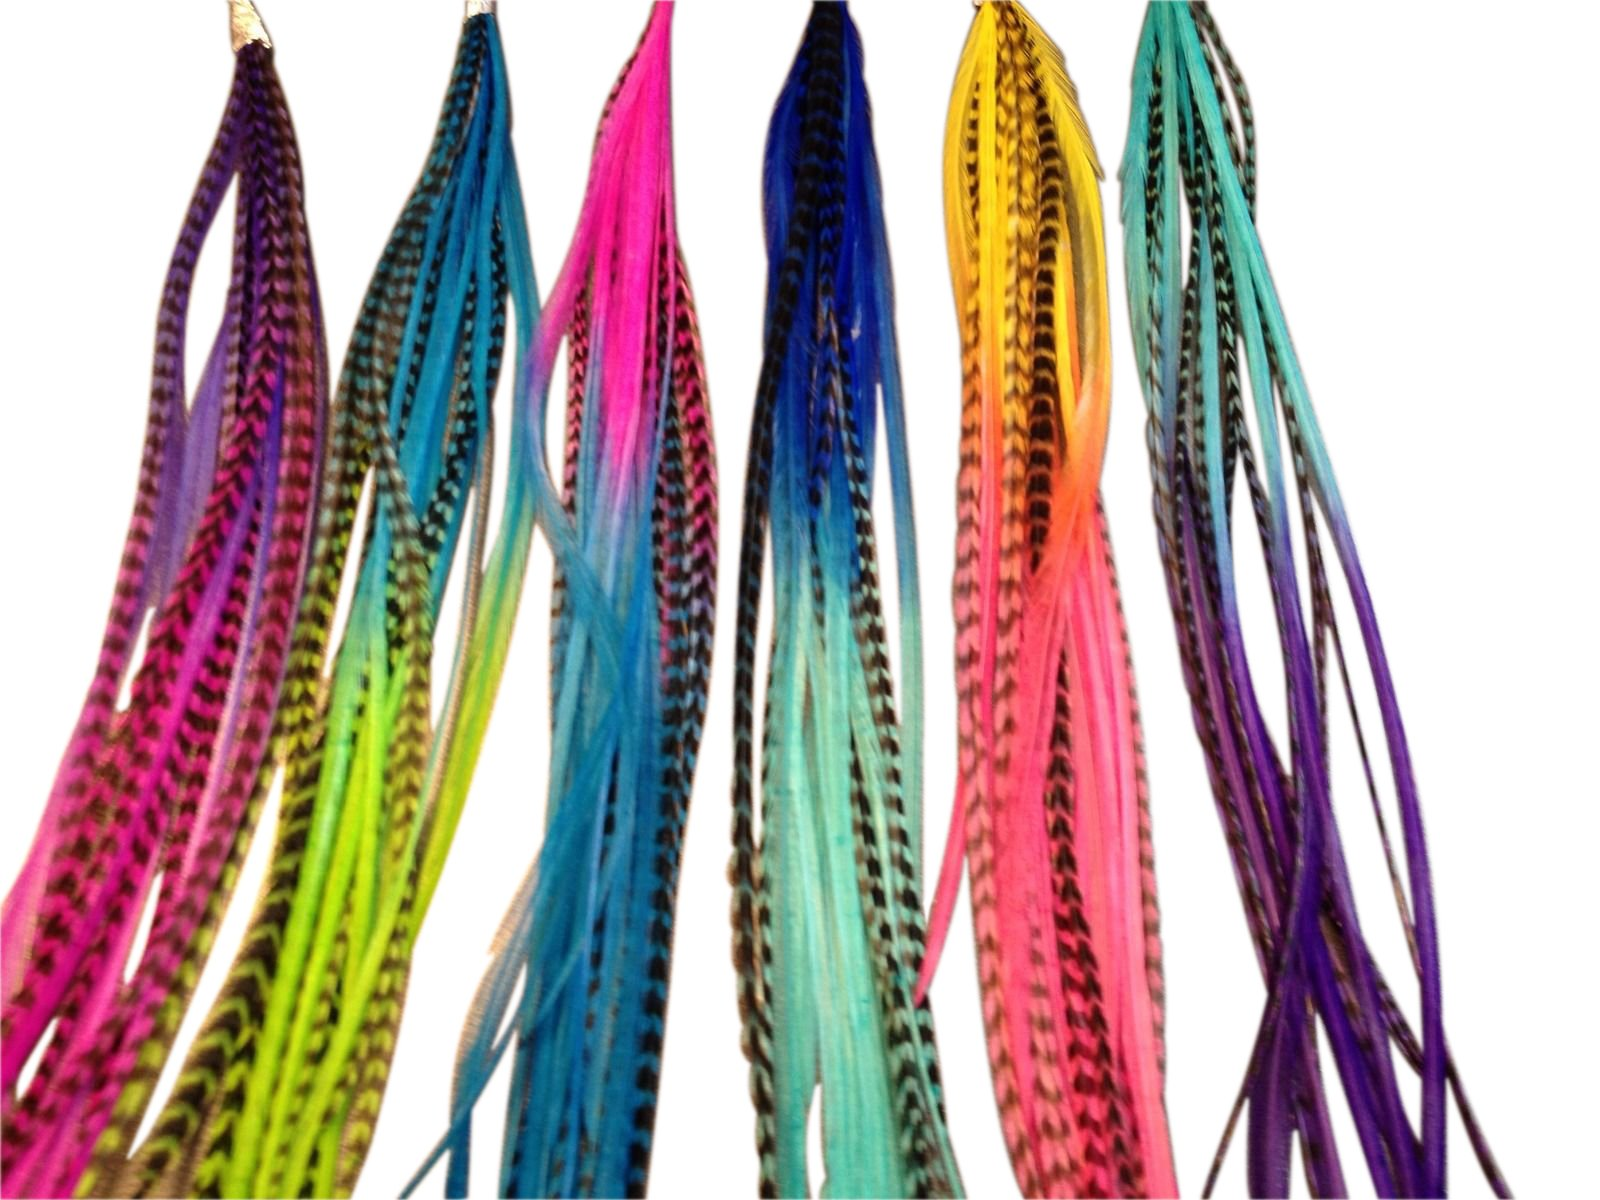 Feather Hair Extensions, 100% Real Rooster Feathers, 100 Long Thin Loose Individual Feathers, By Feather Lily by Feather Lily (Image #6)